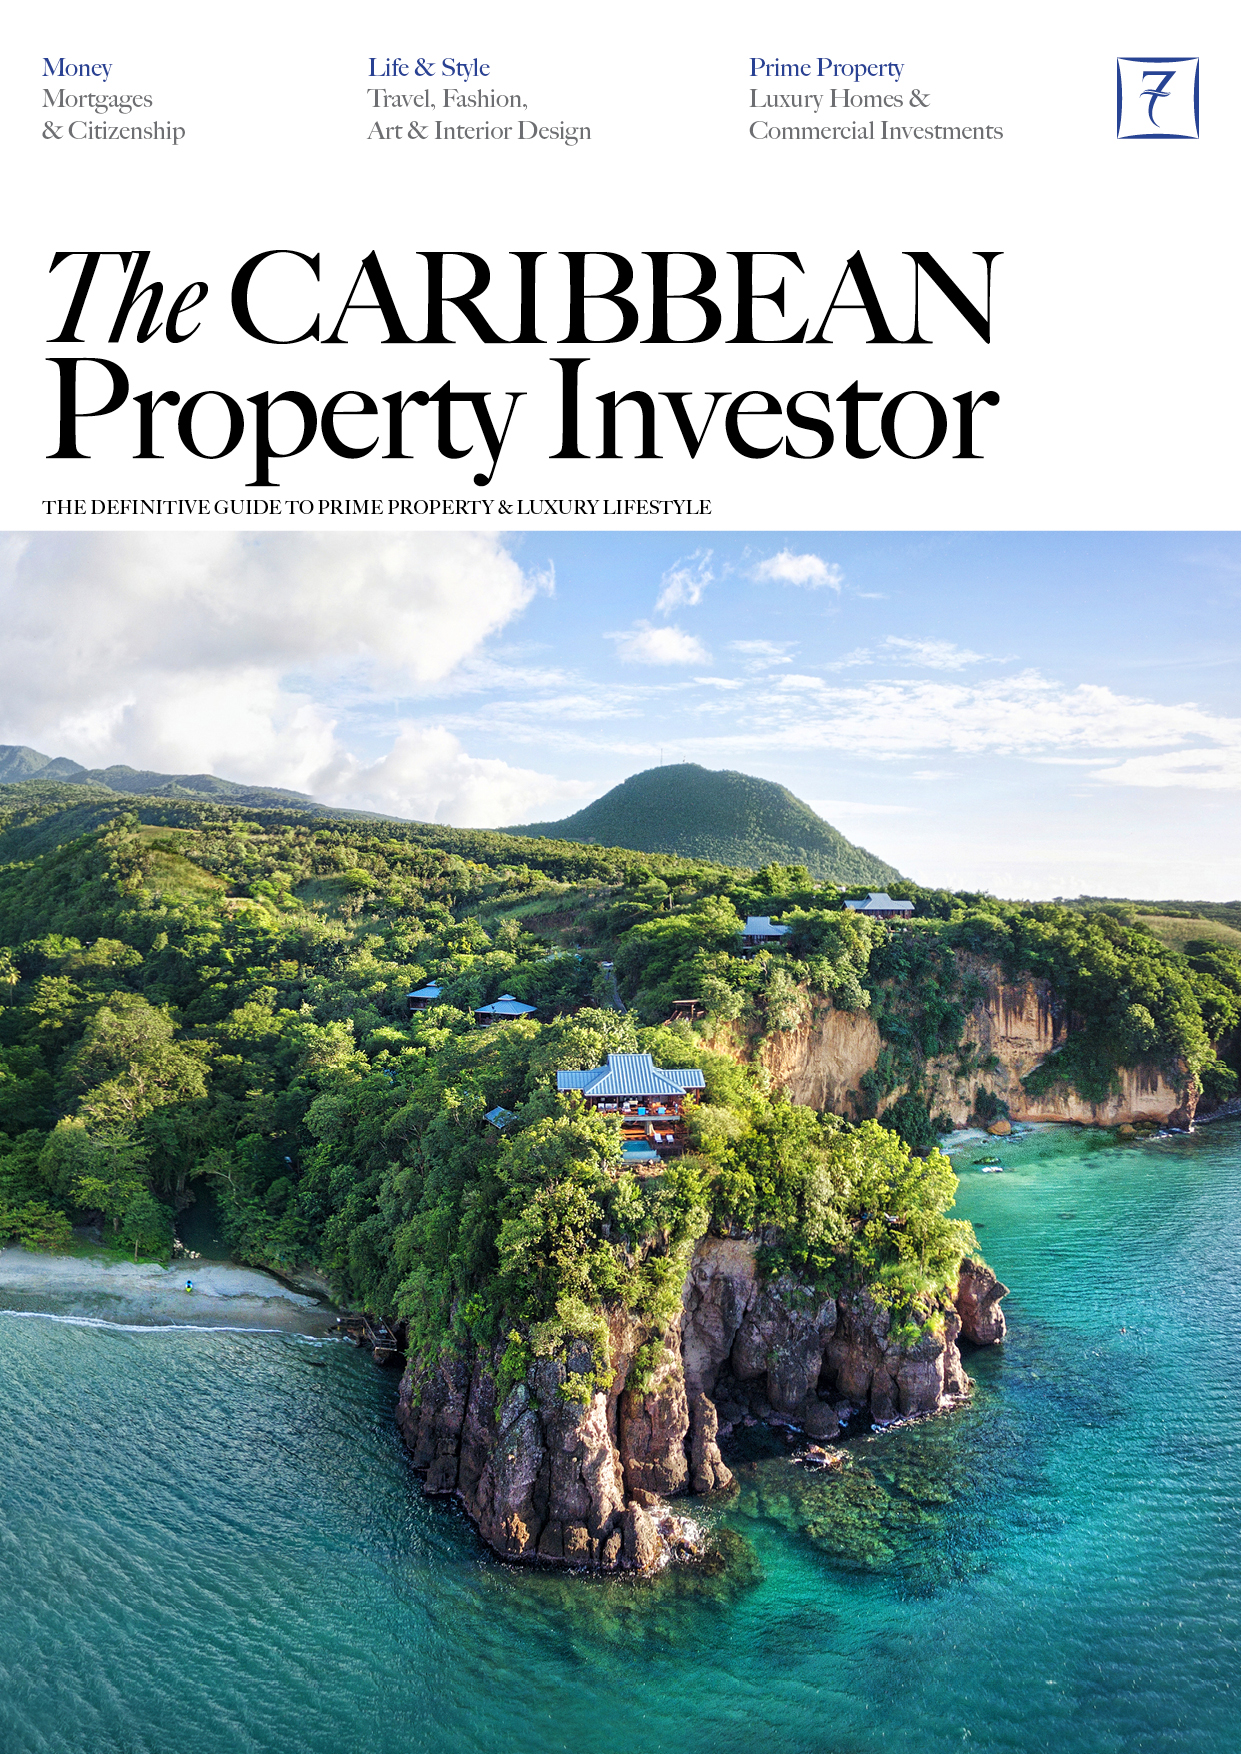 caribbean-property-investor-magazine-issue-7-cover